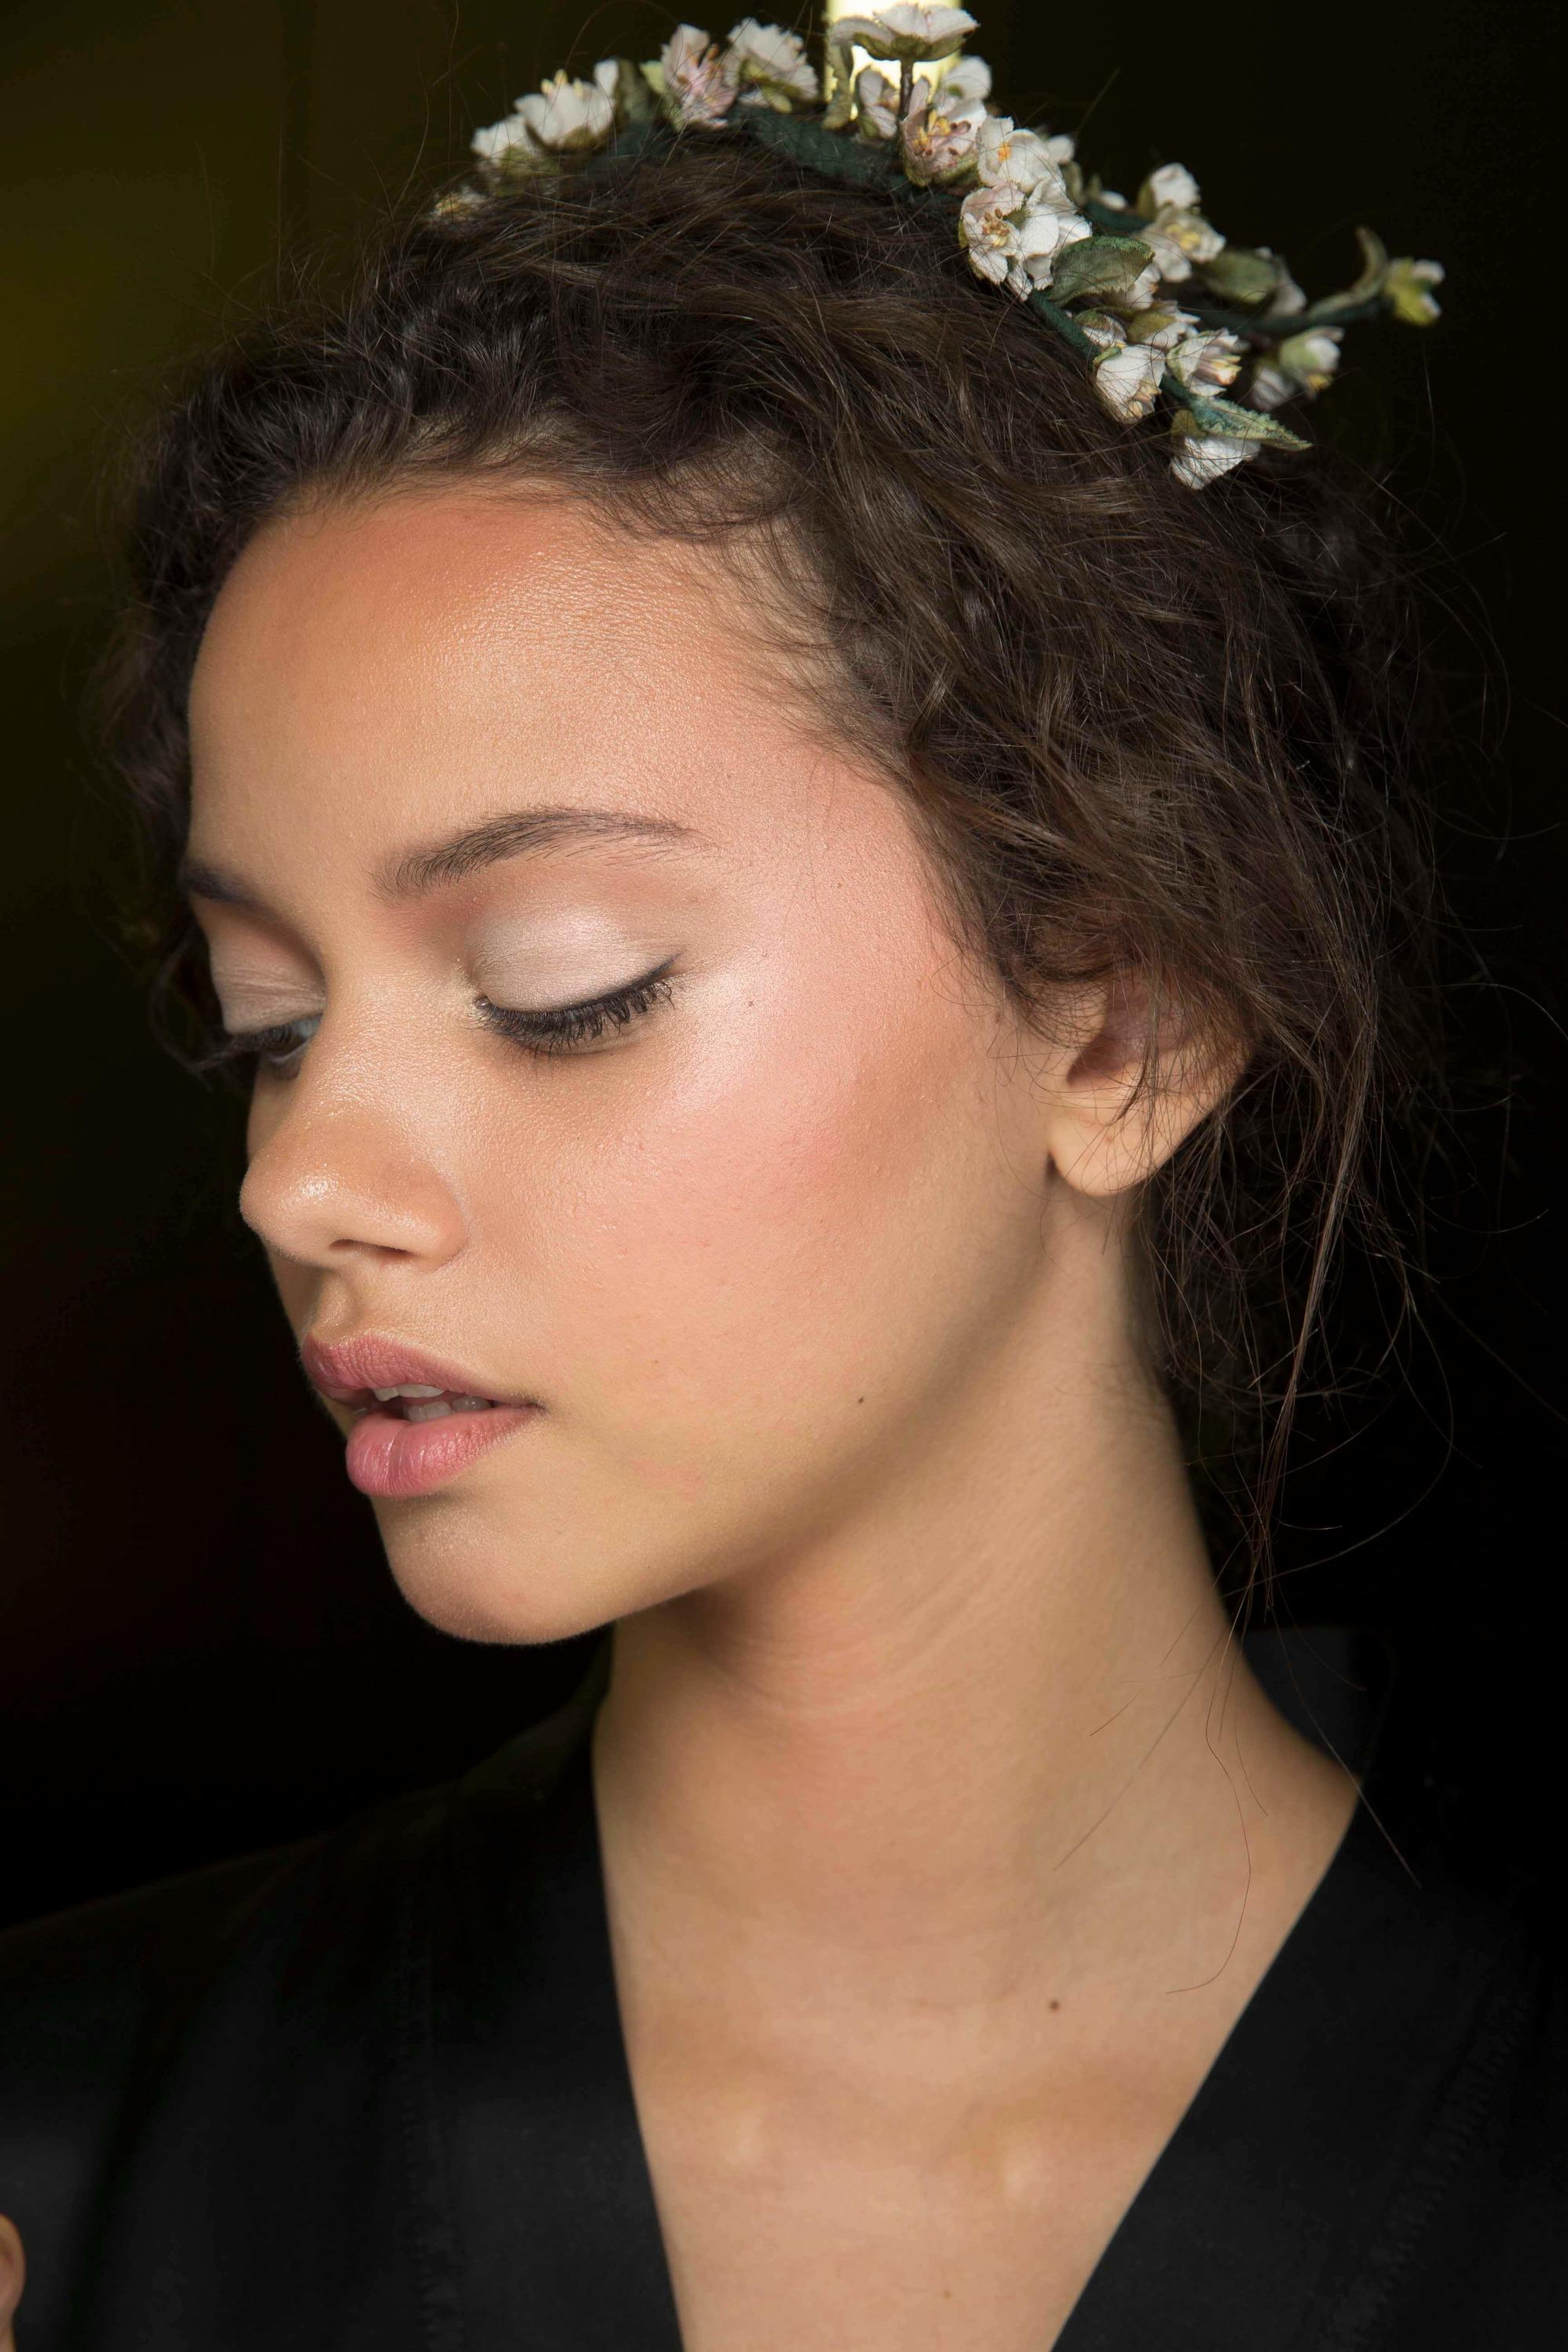 Curly haired model with floral headband